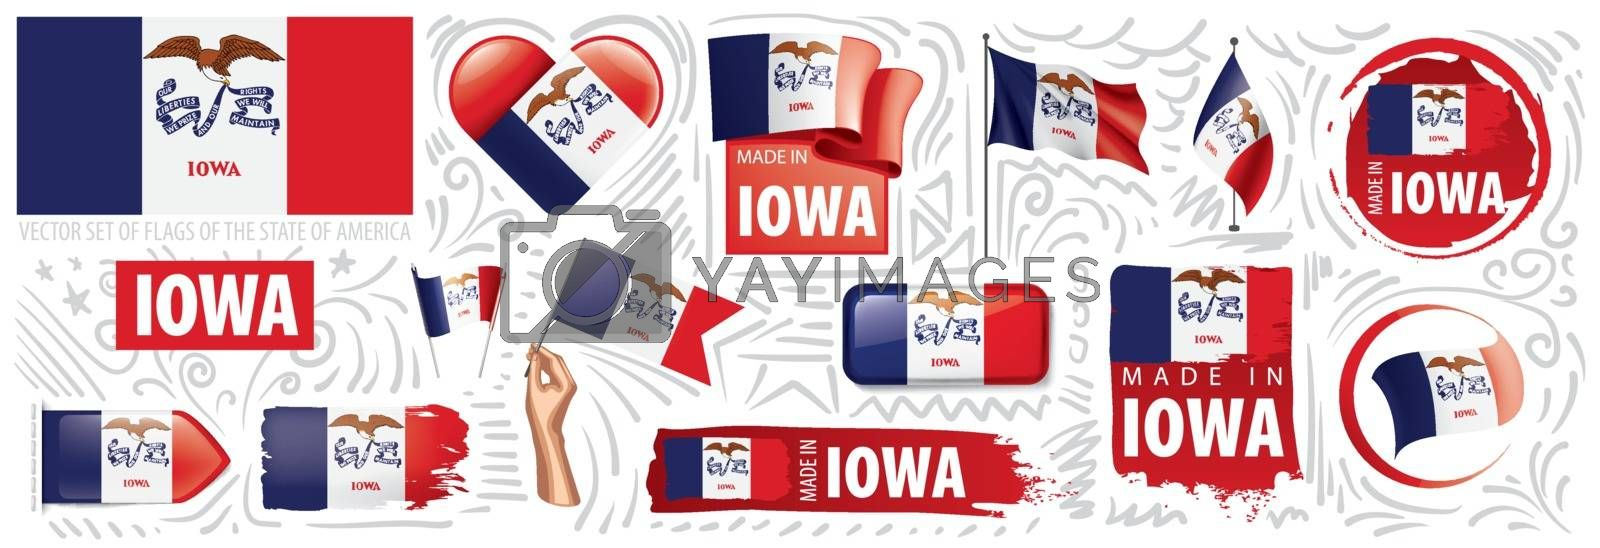 Vector set of flags of the American state of Iowa in different designs.